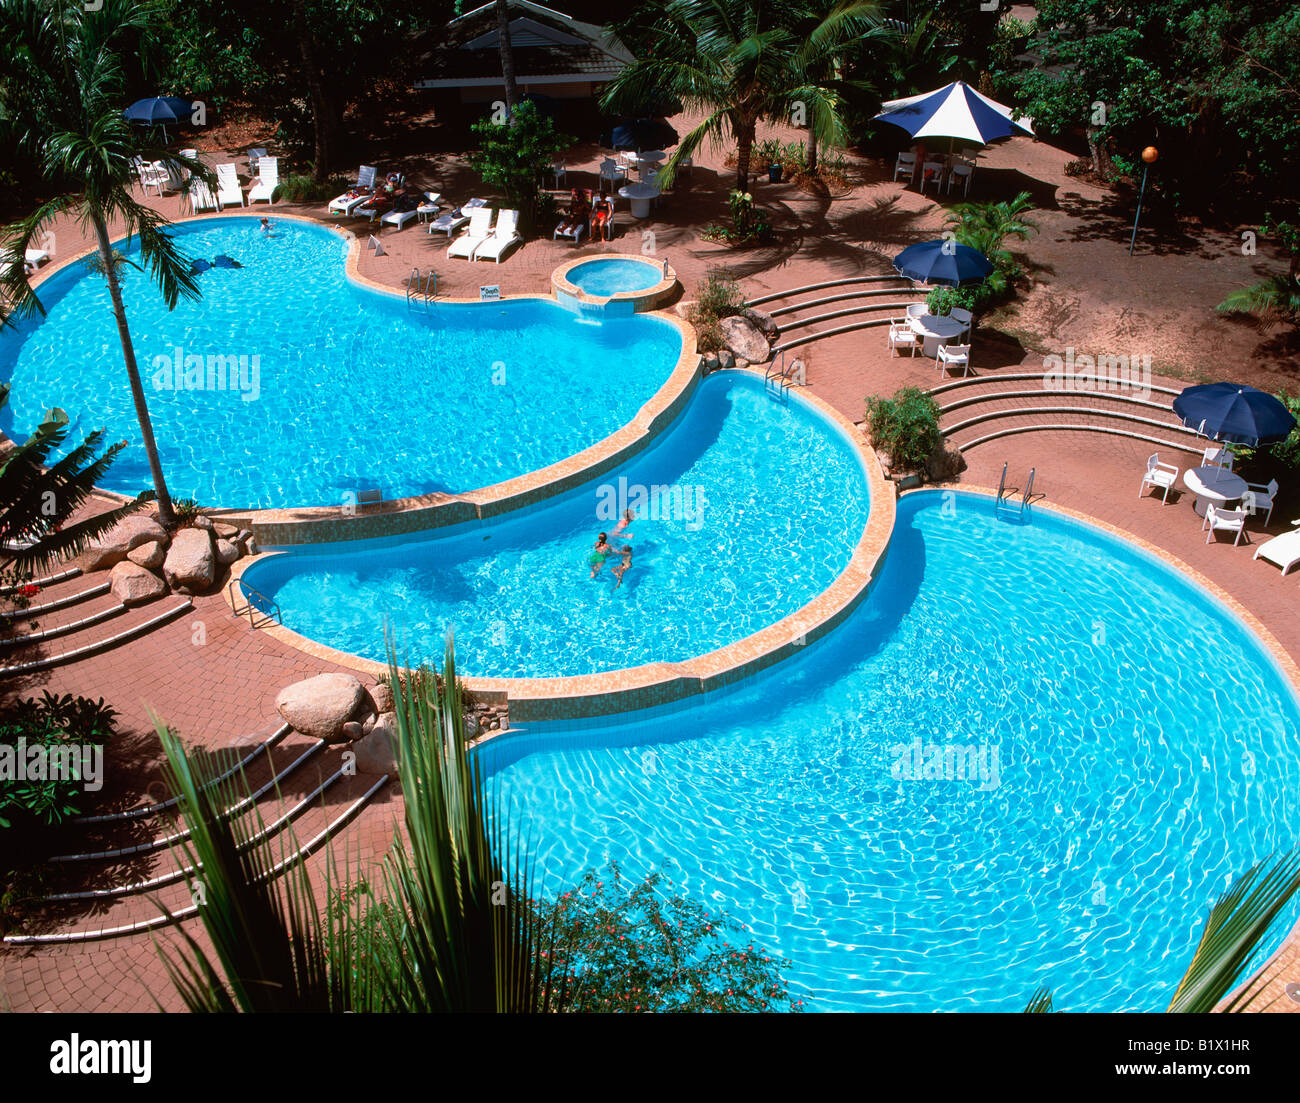 Pics Of Swimming Pools: Cascade Swimming Pool Dunk Island Resort Queensland